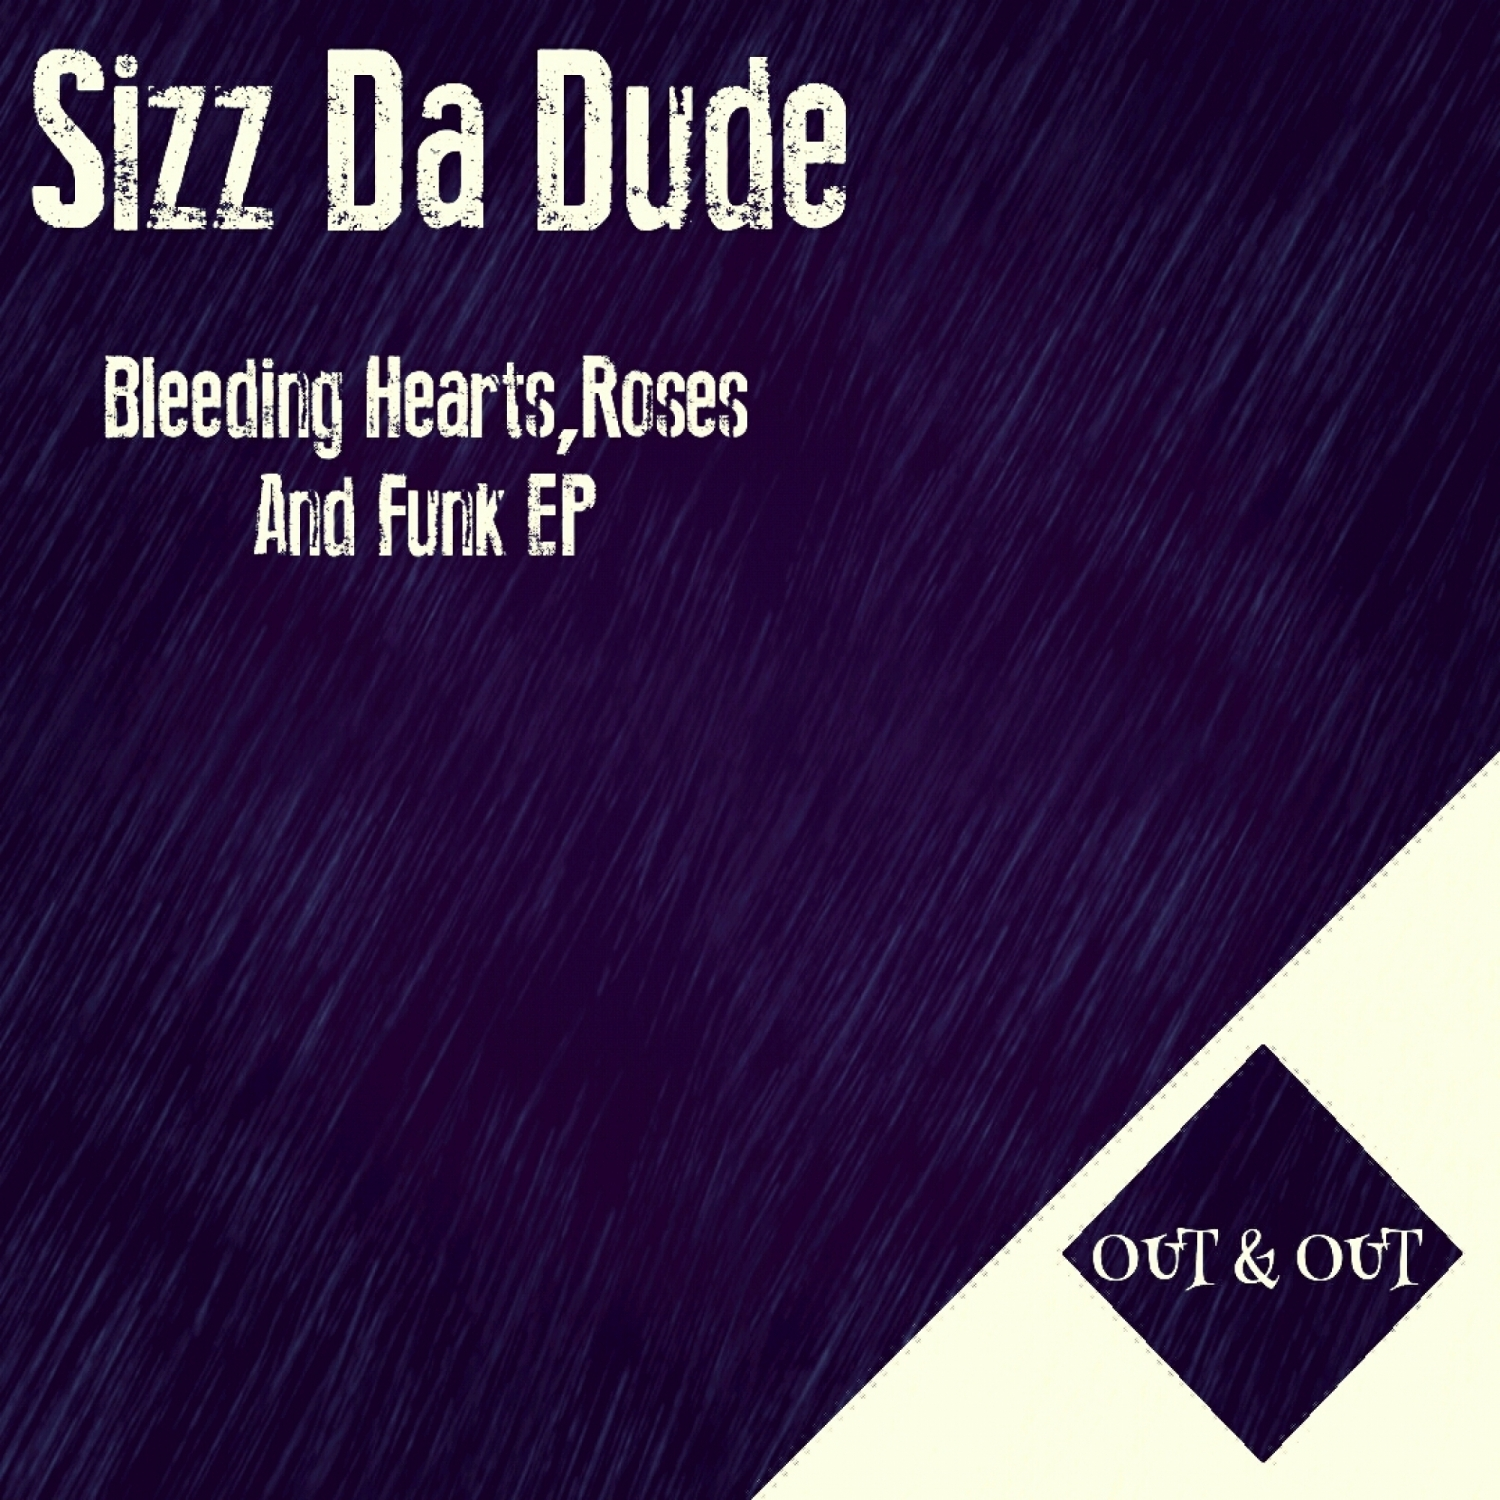 Sizz Da Dude - In The Beginning Of Time  (Original Mix)